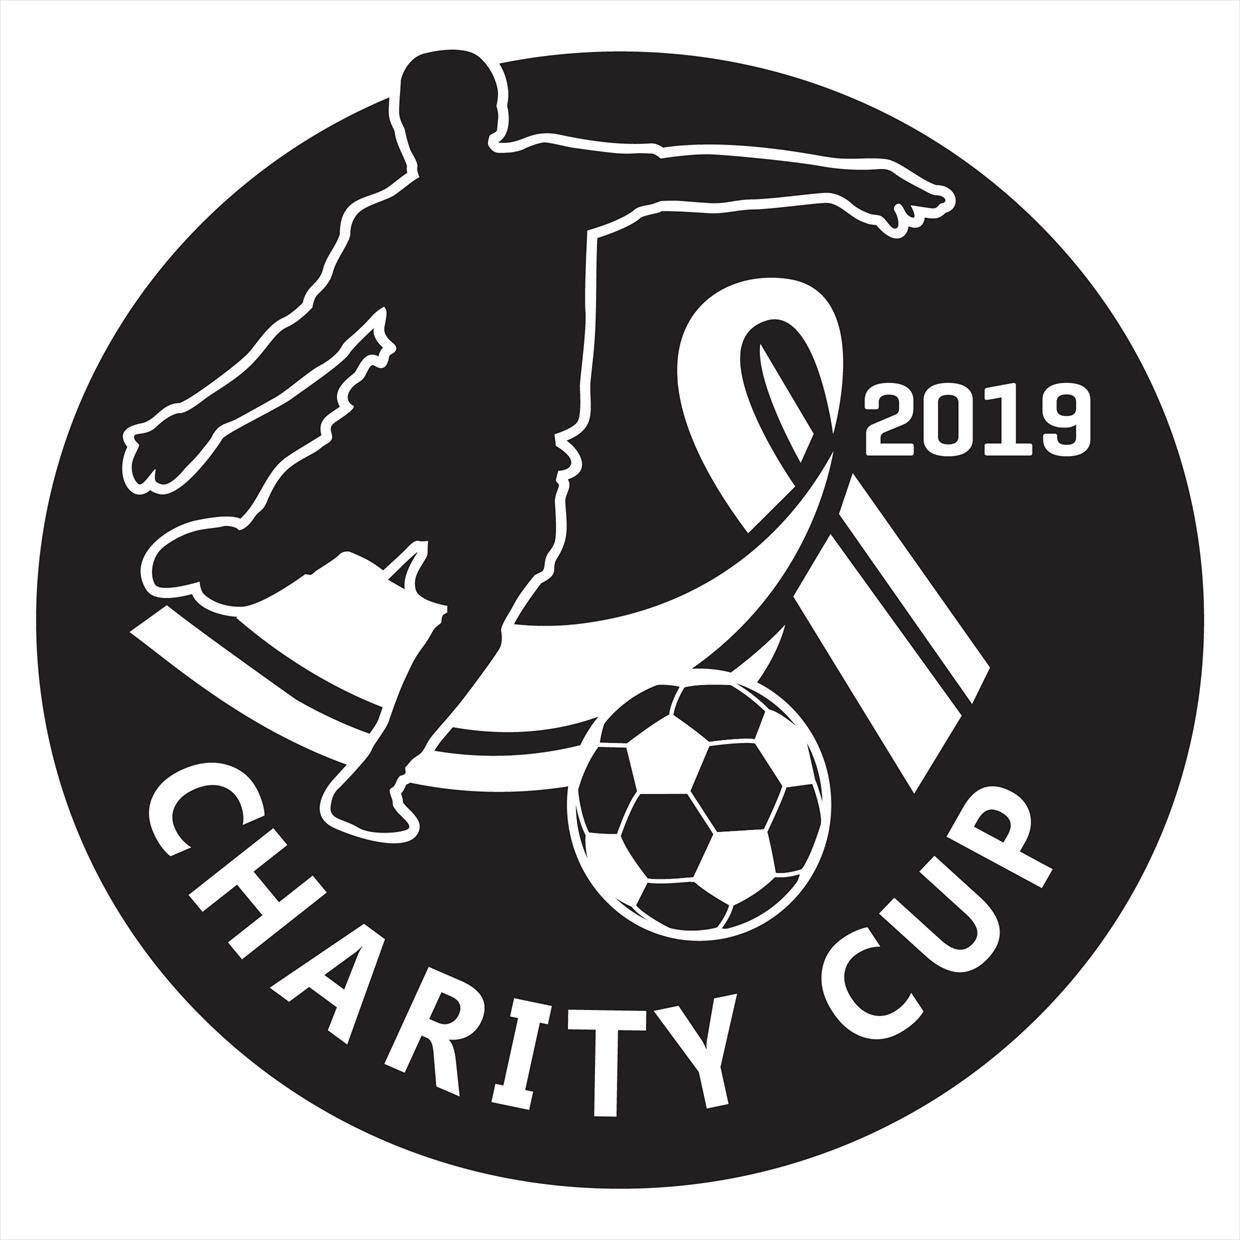 Eswatini Charity Cup Pic